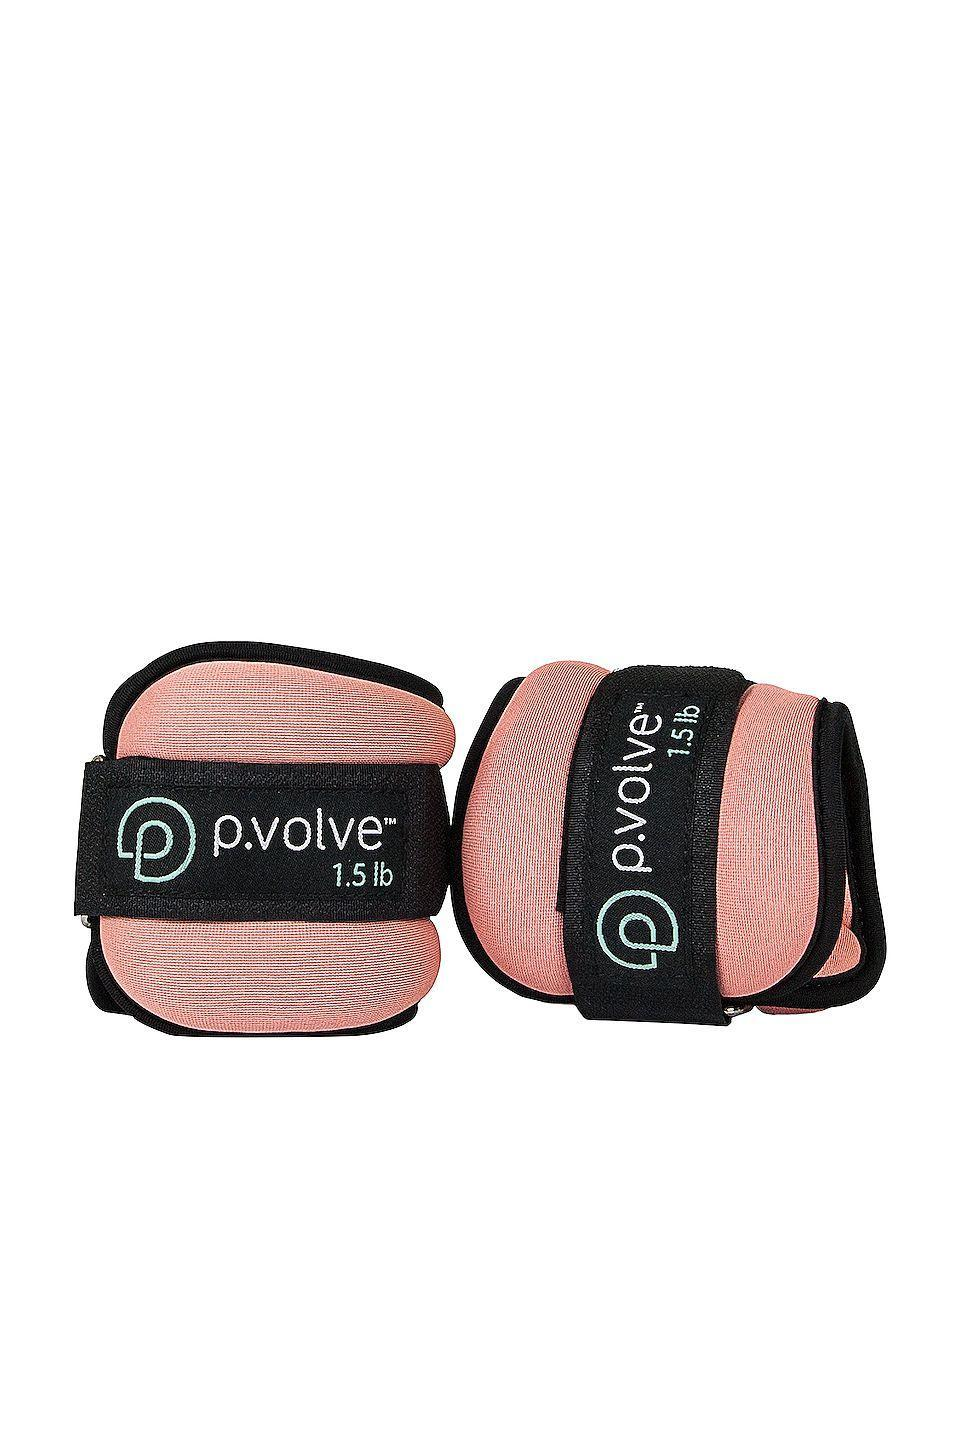 """<p><strong>P.volve</strong></p><p>revolve.com</p><p><strong>$20.00</strong></p><p><a href=""""https://go.redirectingat.com?id=74968X1596630&url=https%3A%2F%2Fwww.revolve.com%2Fdp%2FPVOR-WU9%2F&sref=https%3A%2F%2Fwww.womenshealthmag.com%2Flife%2Fg33503014%2Fsecret-santa-gifts%2F"""" rel=""""nofollow noopener"""" target=""""_blank"""" data-ylk=""""slk:Shop Now"""" class=""""link rapid-noclick-resp"""">Shop Now</a></p><p>Is your Secret Santa a fitness fanatic? Gift them these comfy (and cute) pink ankle weights for their next Zoom Pilates sesh. </p>"""